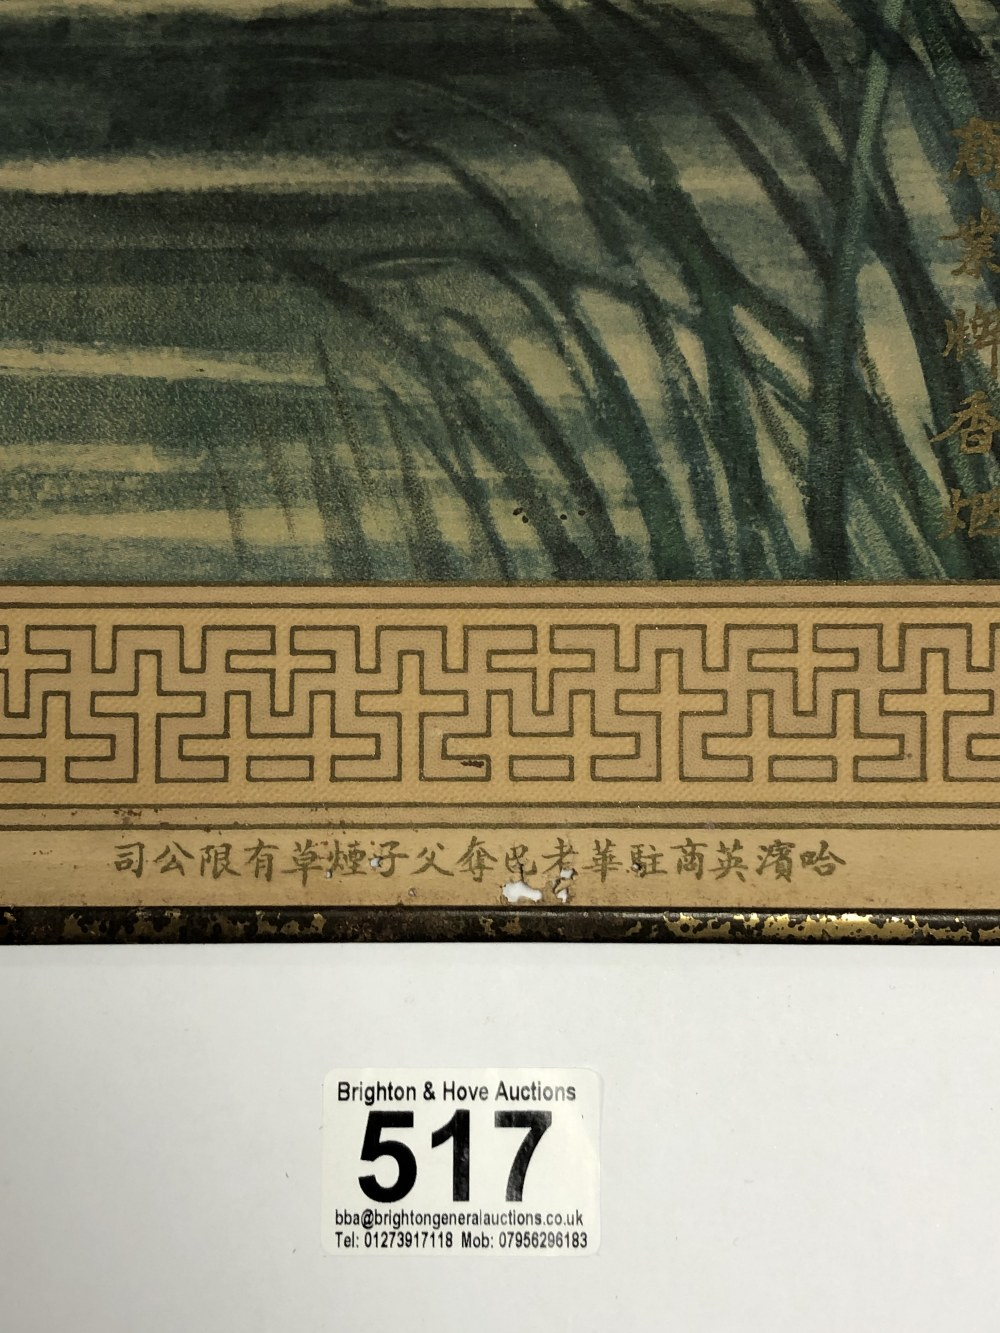 Lot 517 - AN ORIGINAL ANTIQUE CHINESE POSTER ADVERTISING RUSSIAN CIGARETTES FEATURING A WOMAN IN A BOAT WITH A